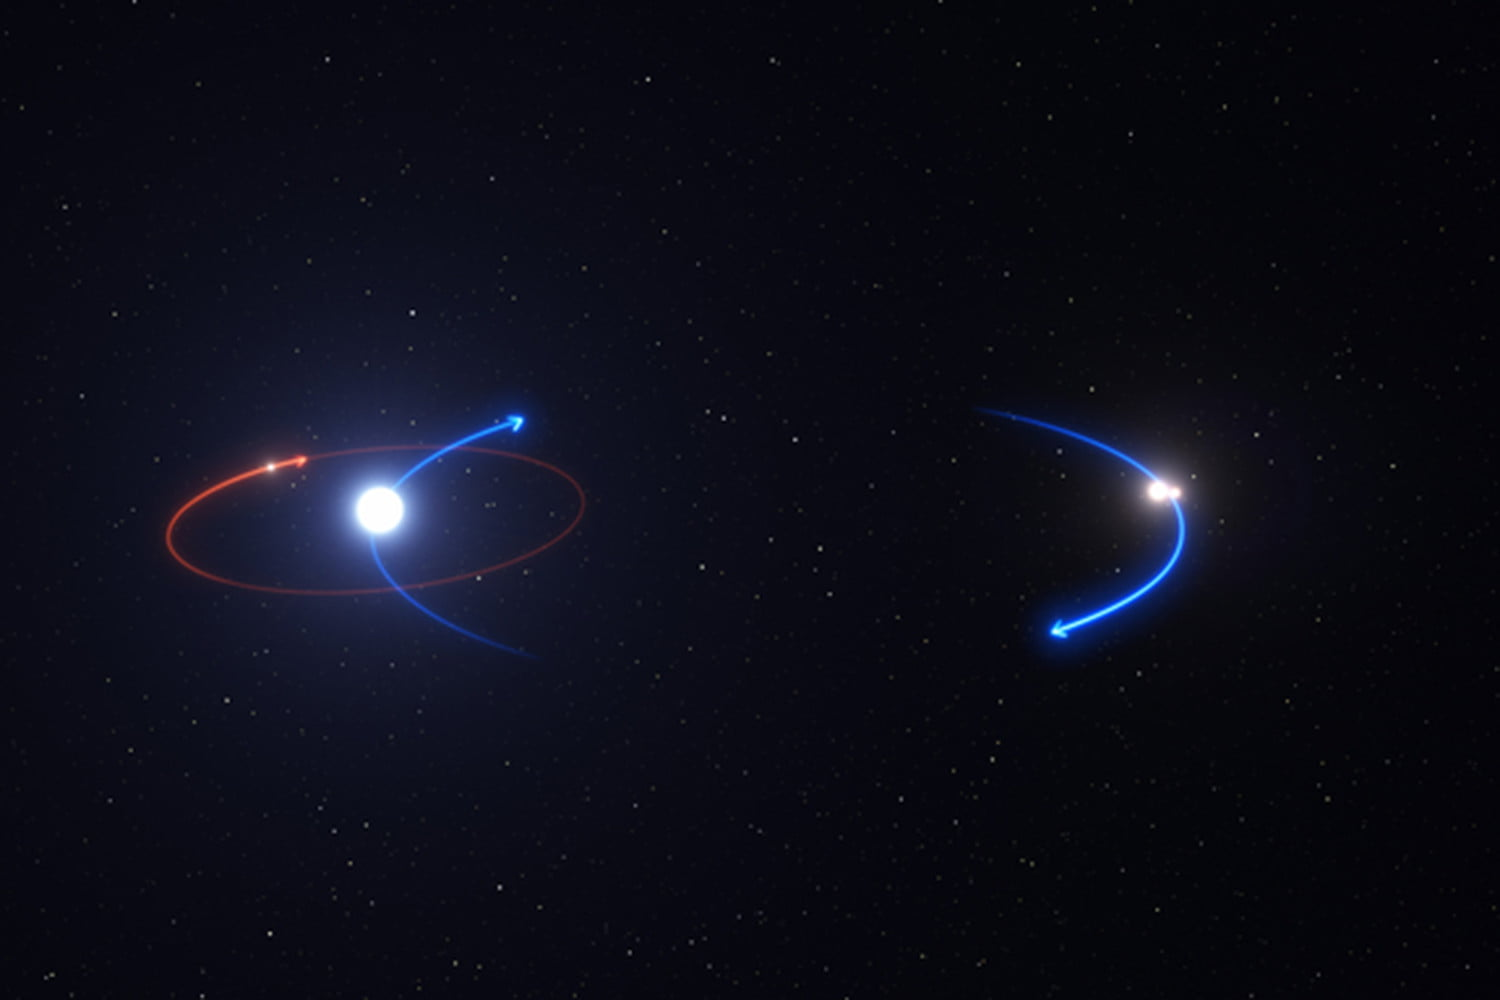 planet three suns the orbits of and stars in hd 131399 system